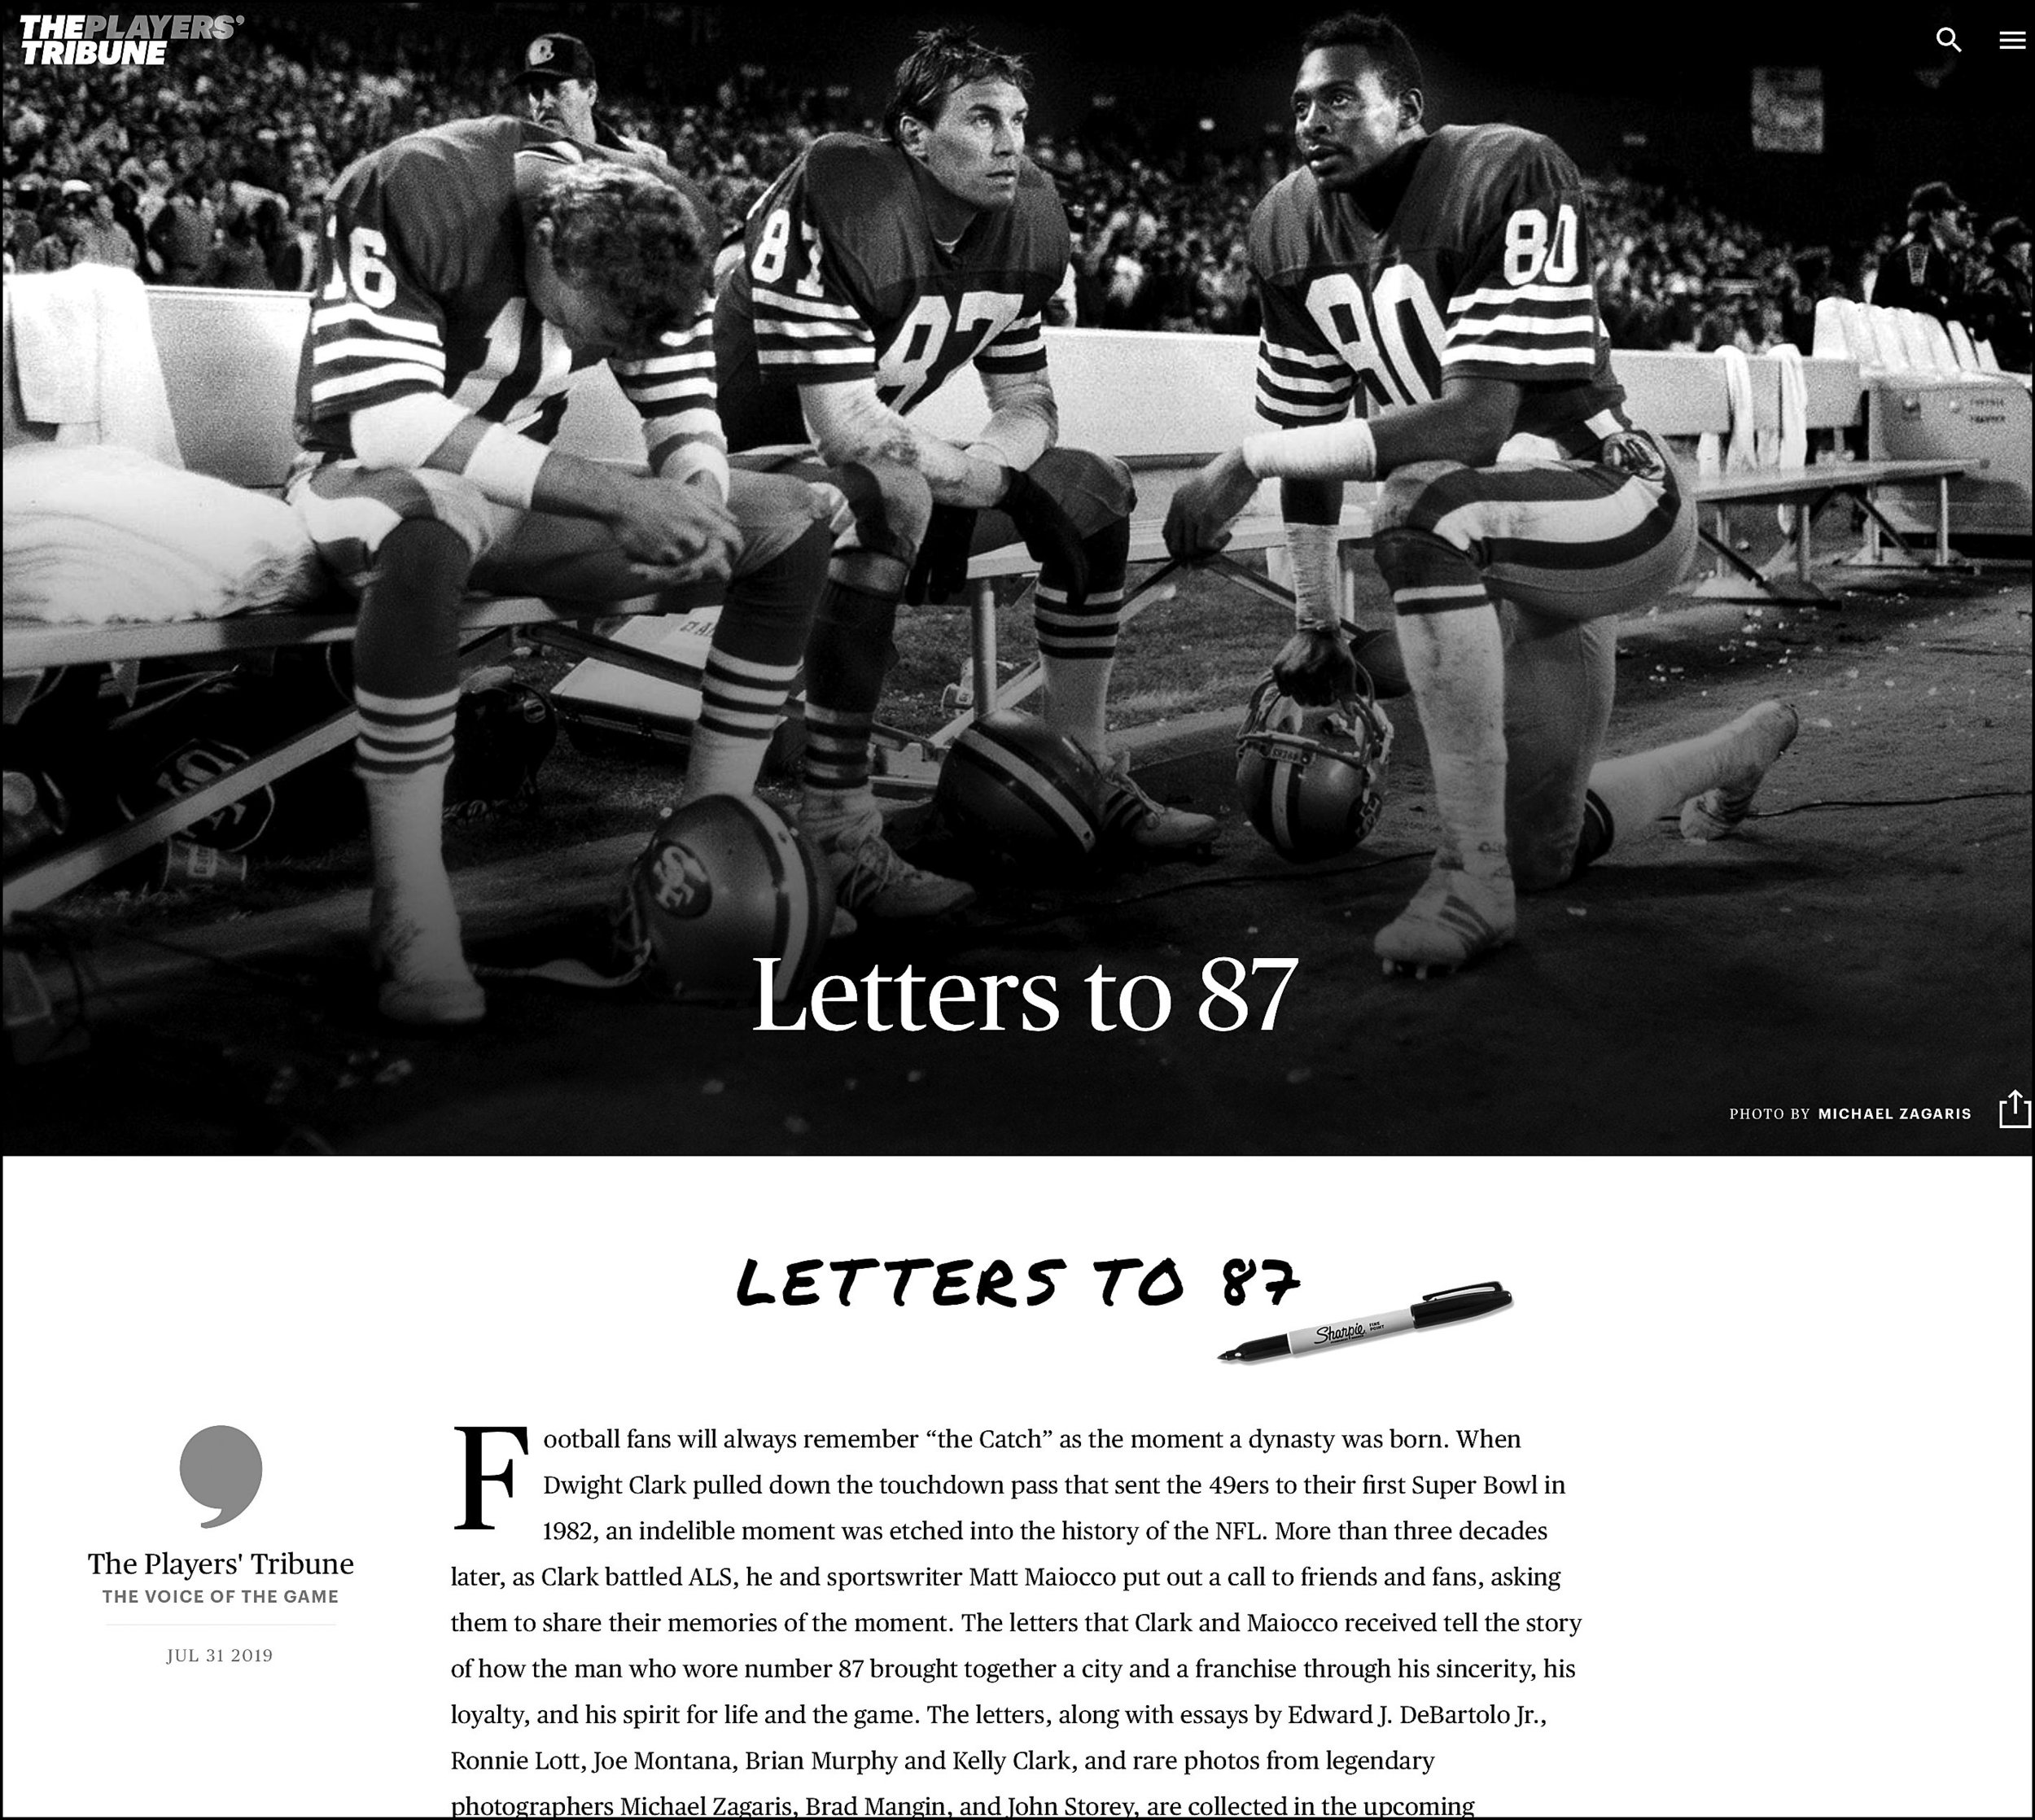 THE PLAYERS' TRIBUNE: Letters to 87 - THE PLAYERS' TRIBUNE shows a glimpse into the Letters to 87 tribute to 49er great Dwight Clark through photographs by Michael Zagaris.